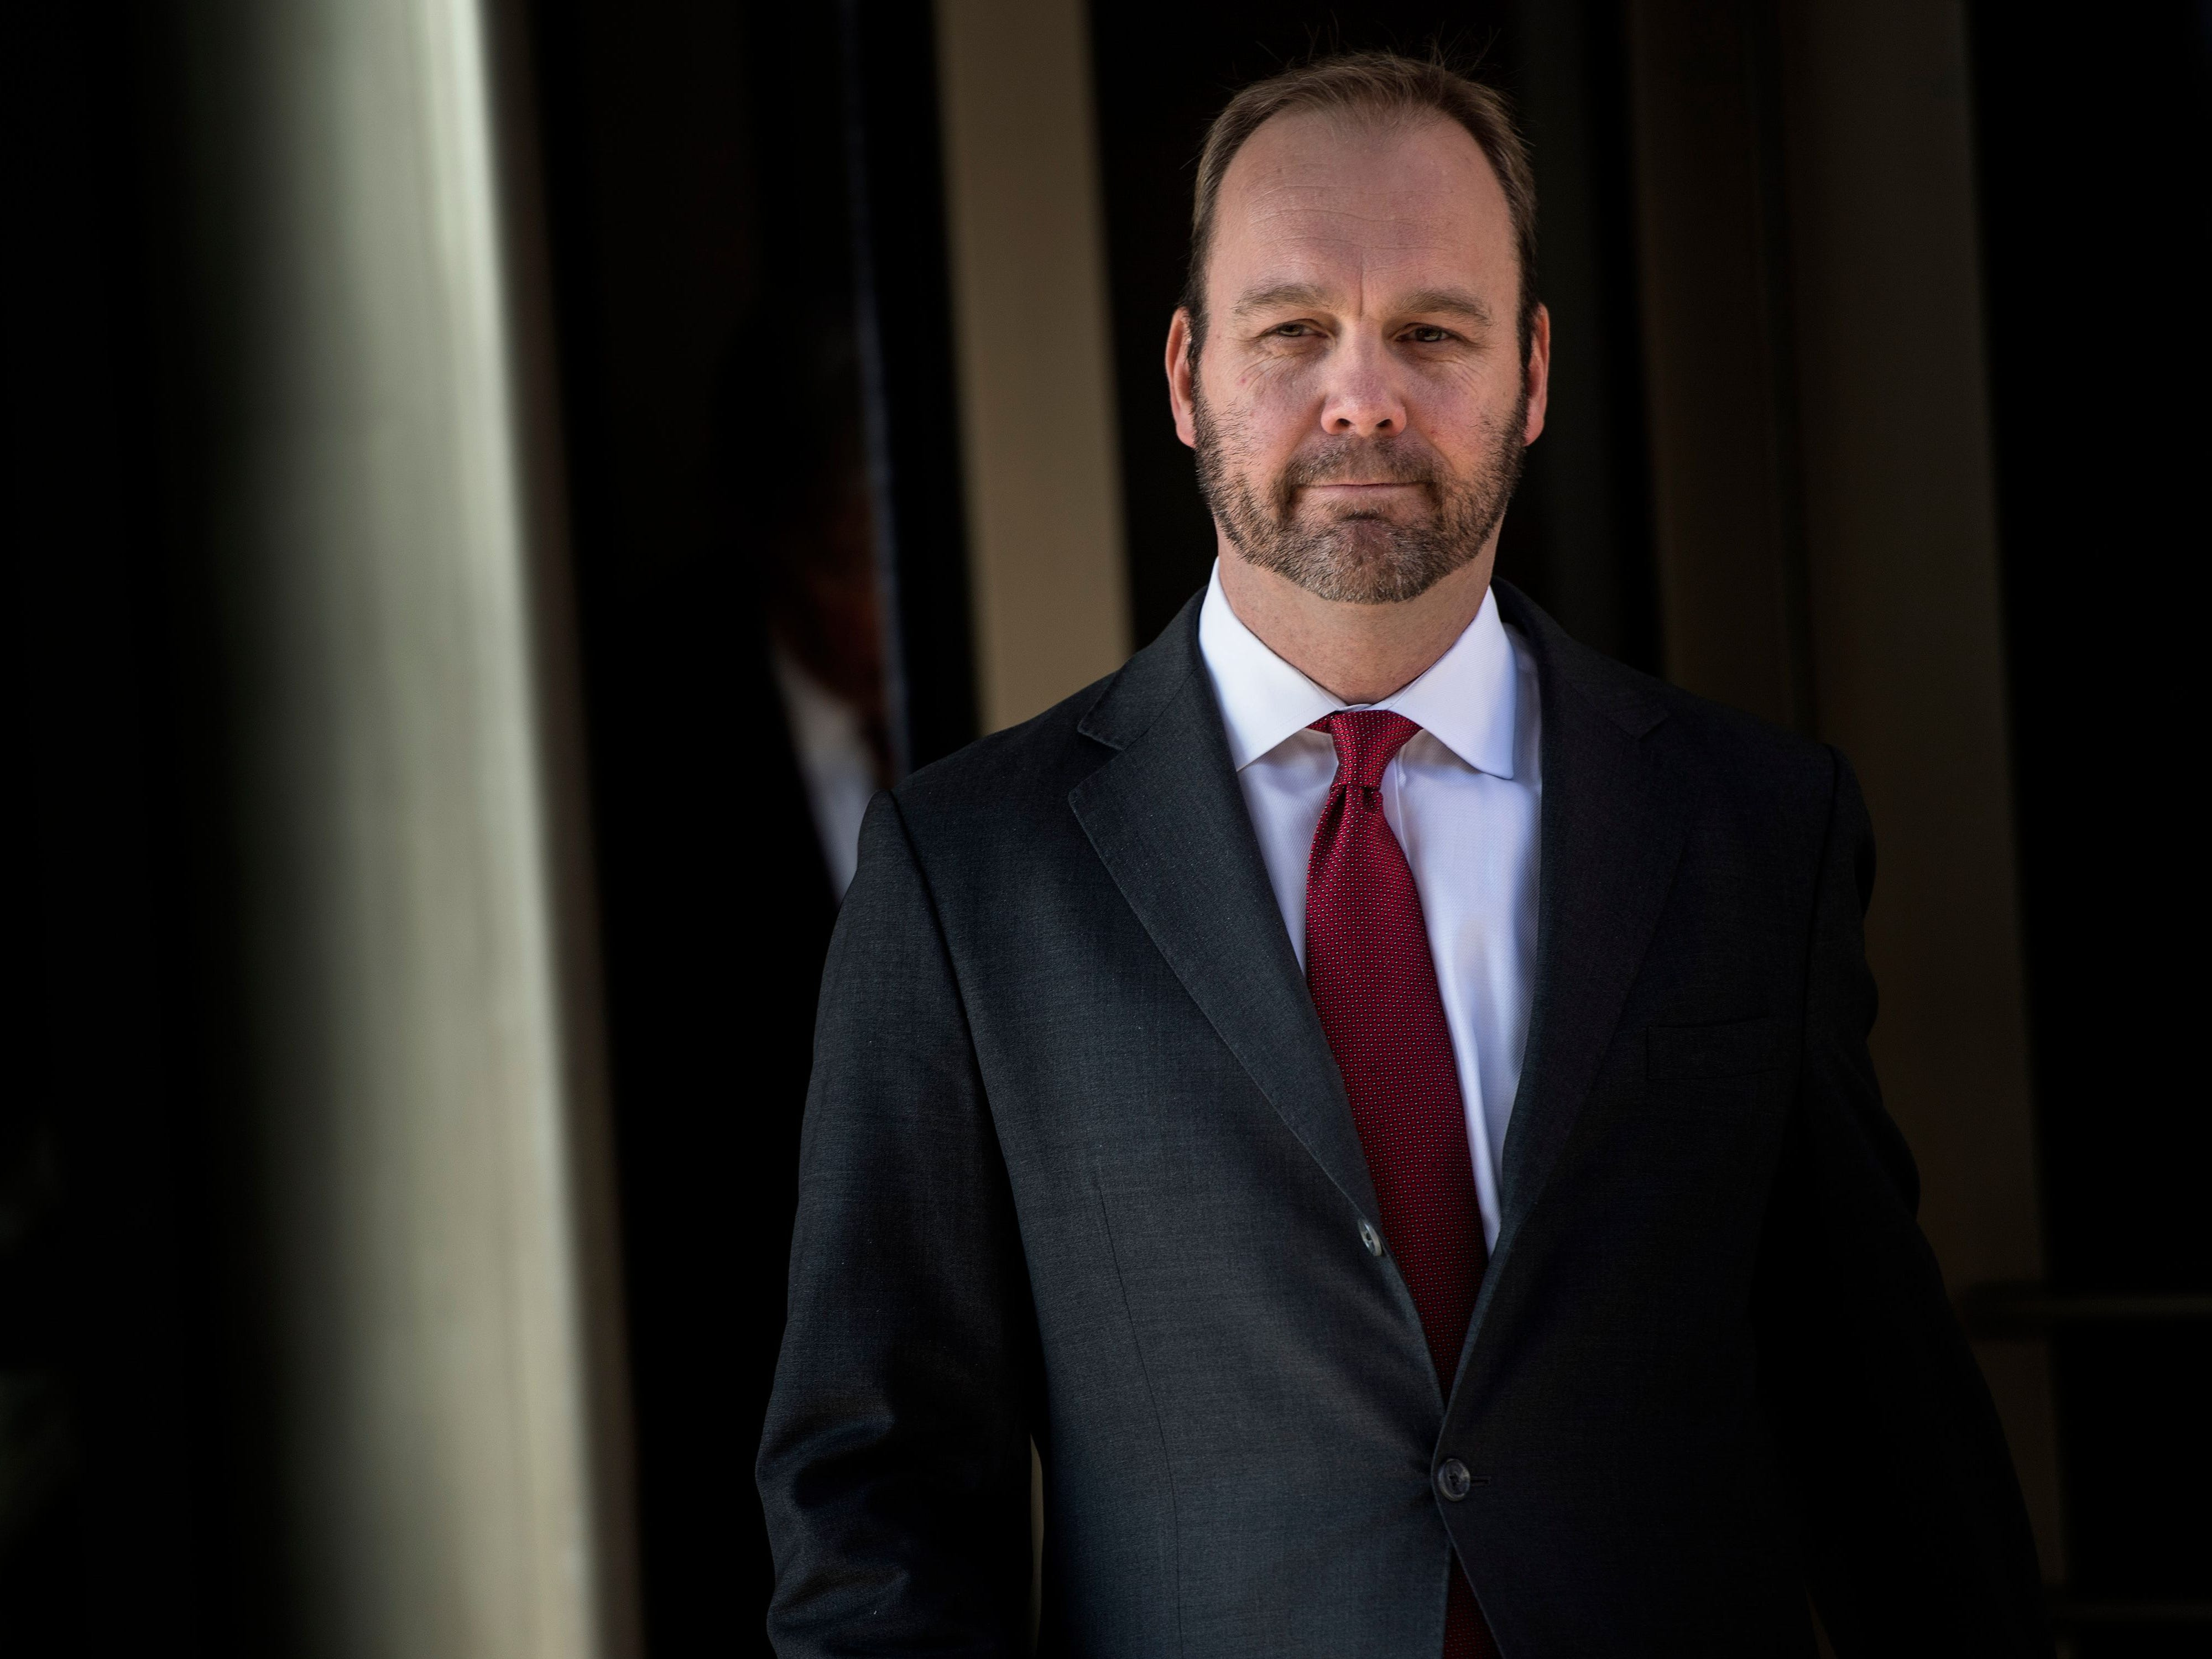 (FILES) In this file photo taken on December 11, 2017 former Trump campaign official Rick Gates leaves Federal Court in Washington, DC. Gates testified on August 6, 2018 on day 5 of the trial against former Trump campaign manager Paul Manafort. Manafort, 69, is the first defendant to go to court to fight charges stemming from Special Counsel Robert Mueller's investigation into Russian interference in the 2016 election. / AFP PHOTO / Brendan SmialowskiBRENDAN SMIALOWSKI/AFP/Getty Images ORIG FILE ID: AFP_1865G7